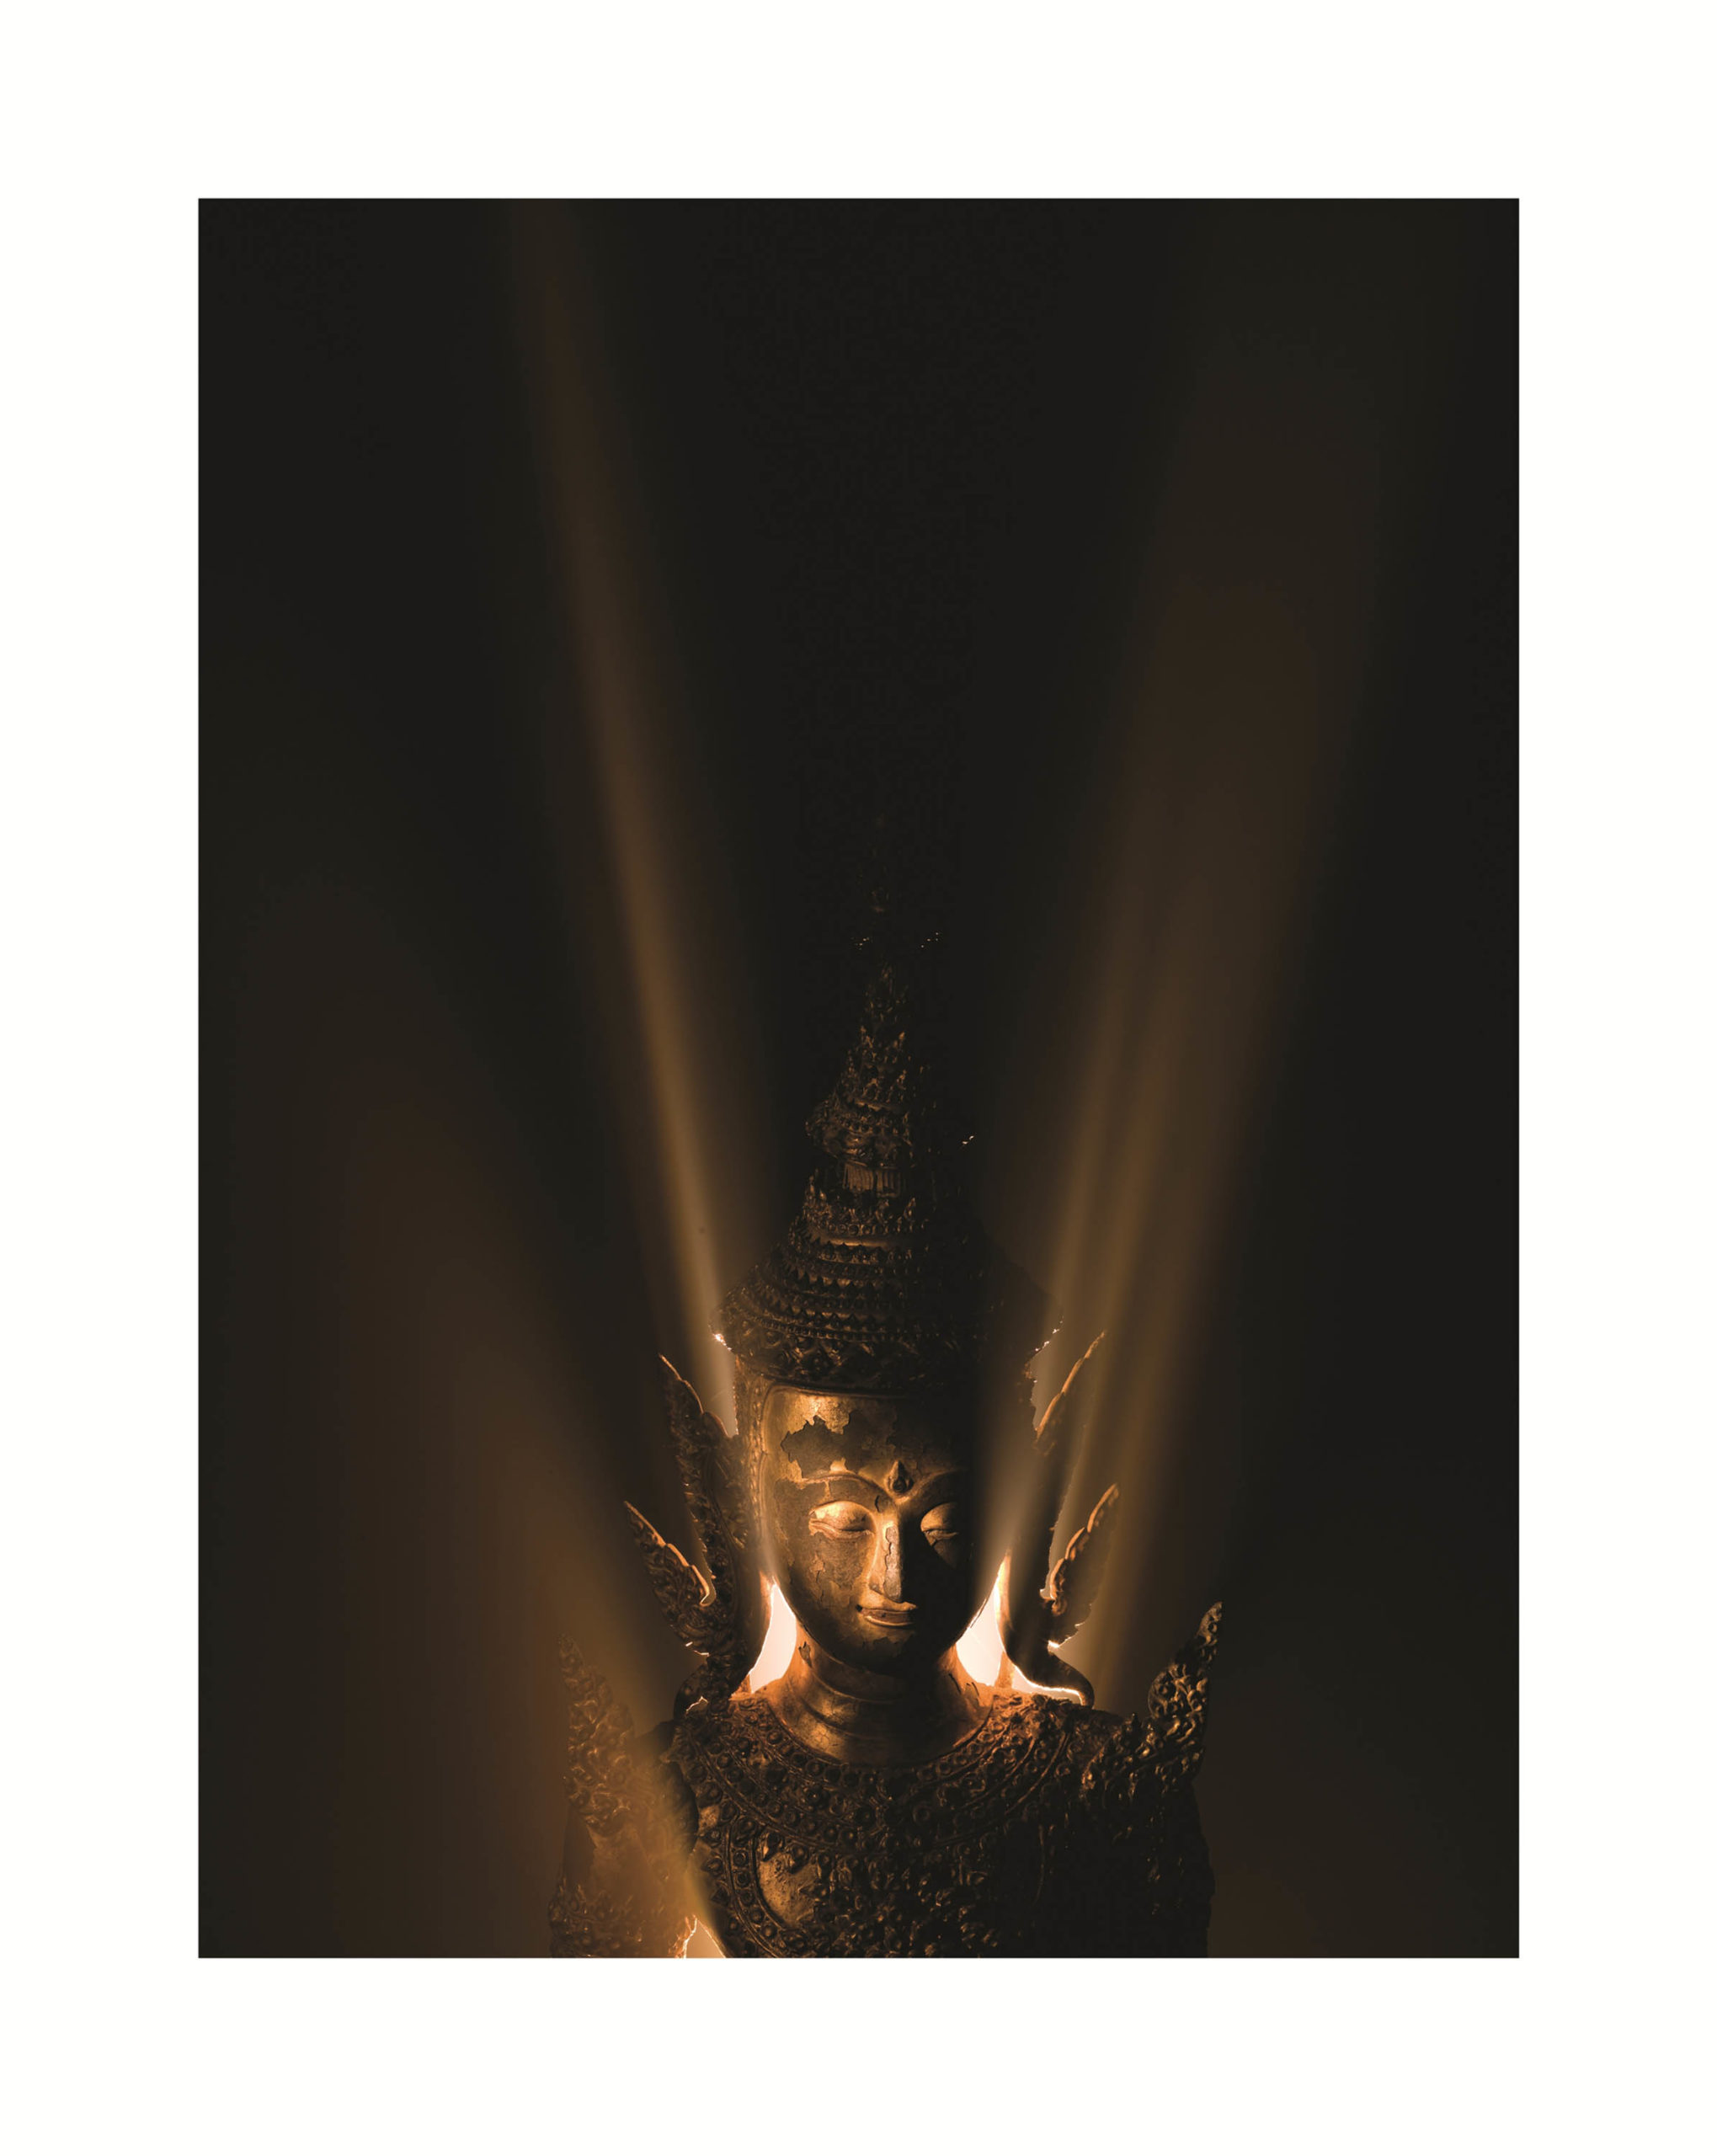 The radii of the Dhamma3